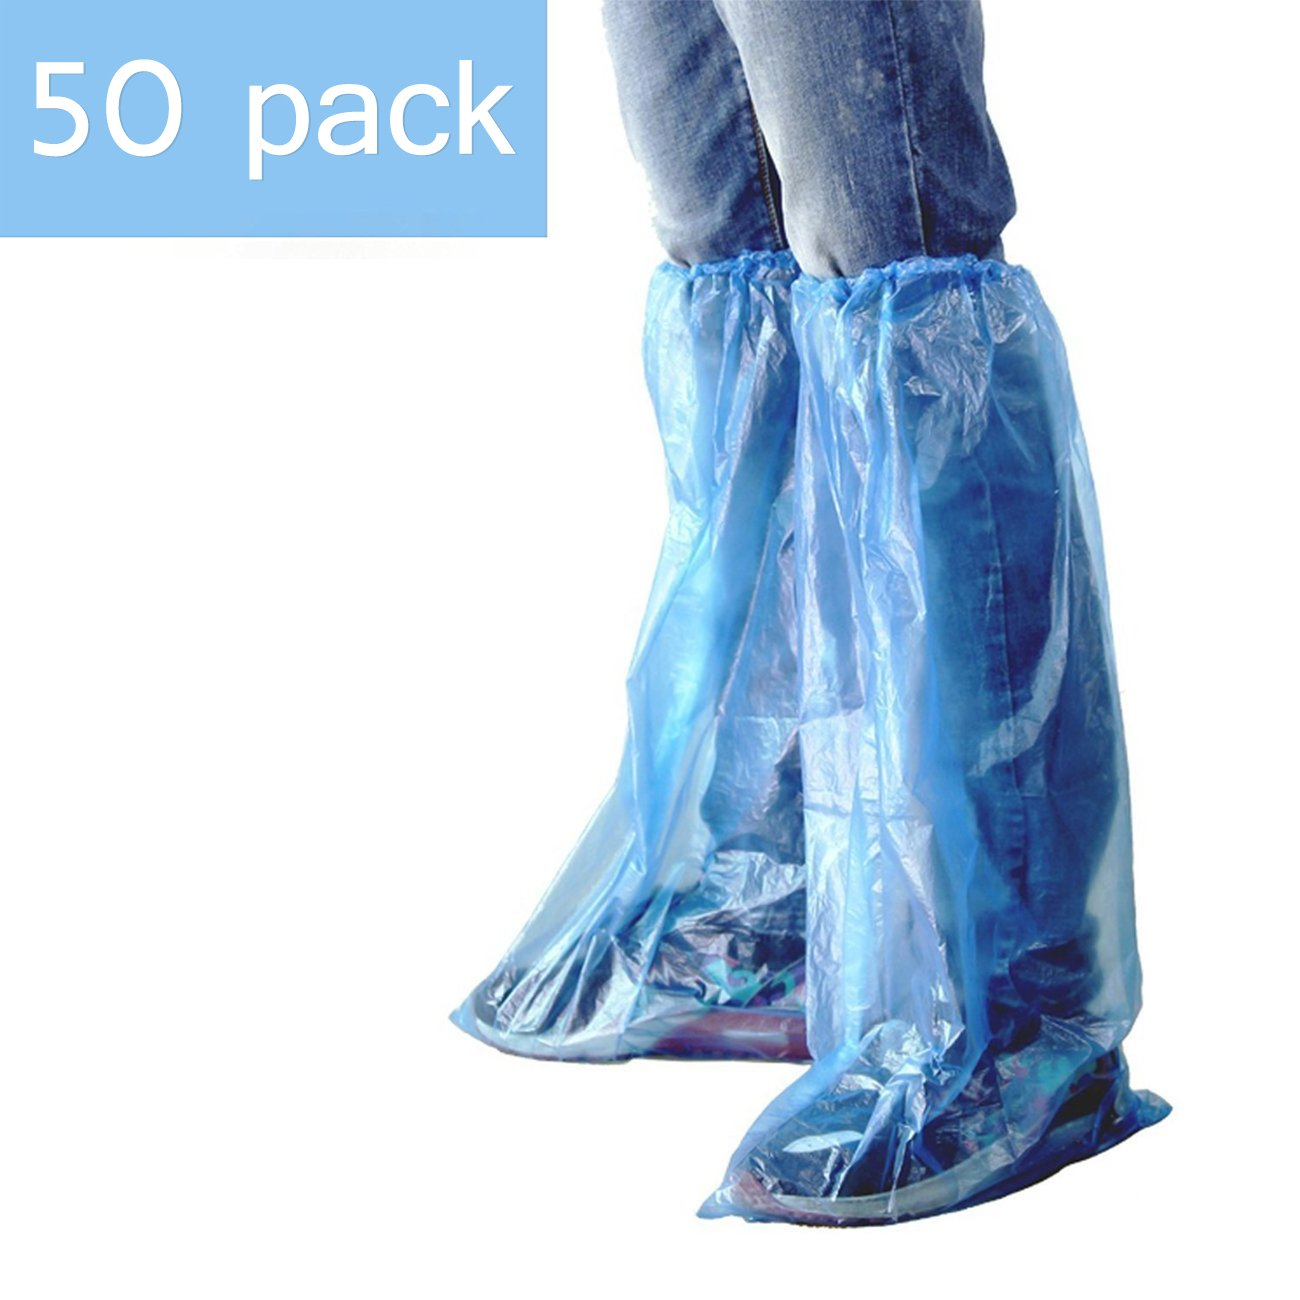 HUABEI 50 Pack Disposable Shoe Covers Blue Rain Shoes and Boots Cover Plastic Shoe Cover Clear Waterproof Anti-Slip Overshoe for Women Men Water Boots Cover Rainy Day Use